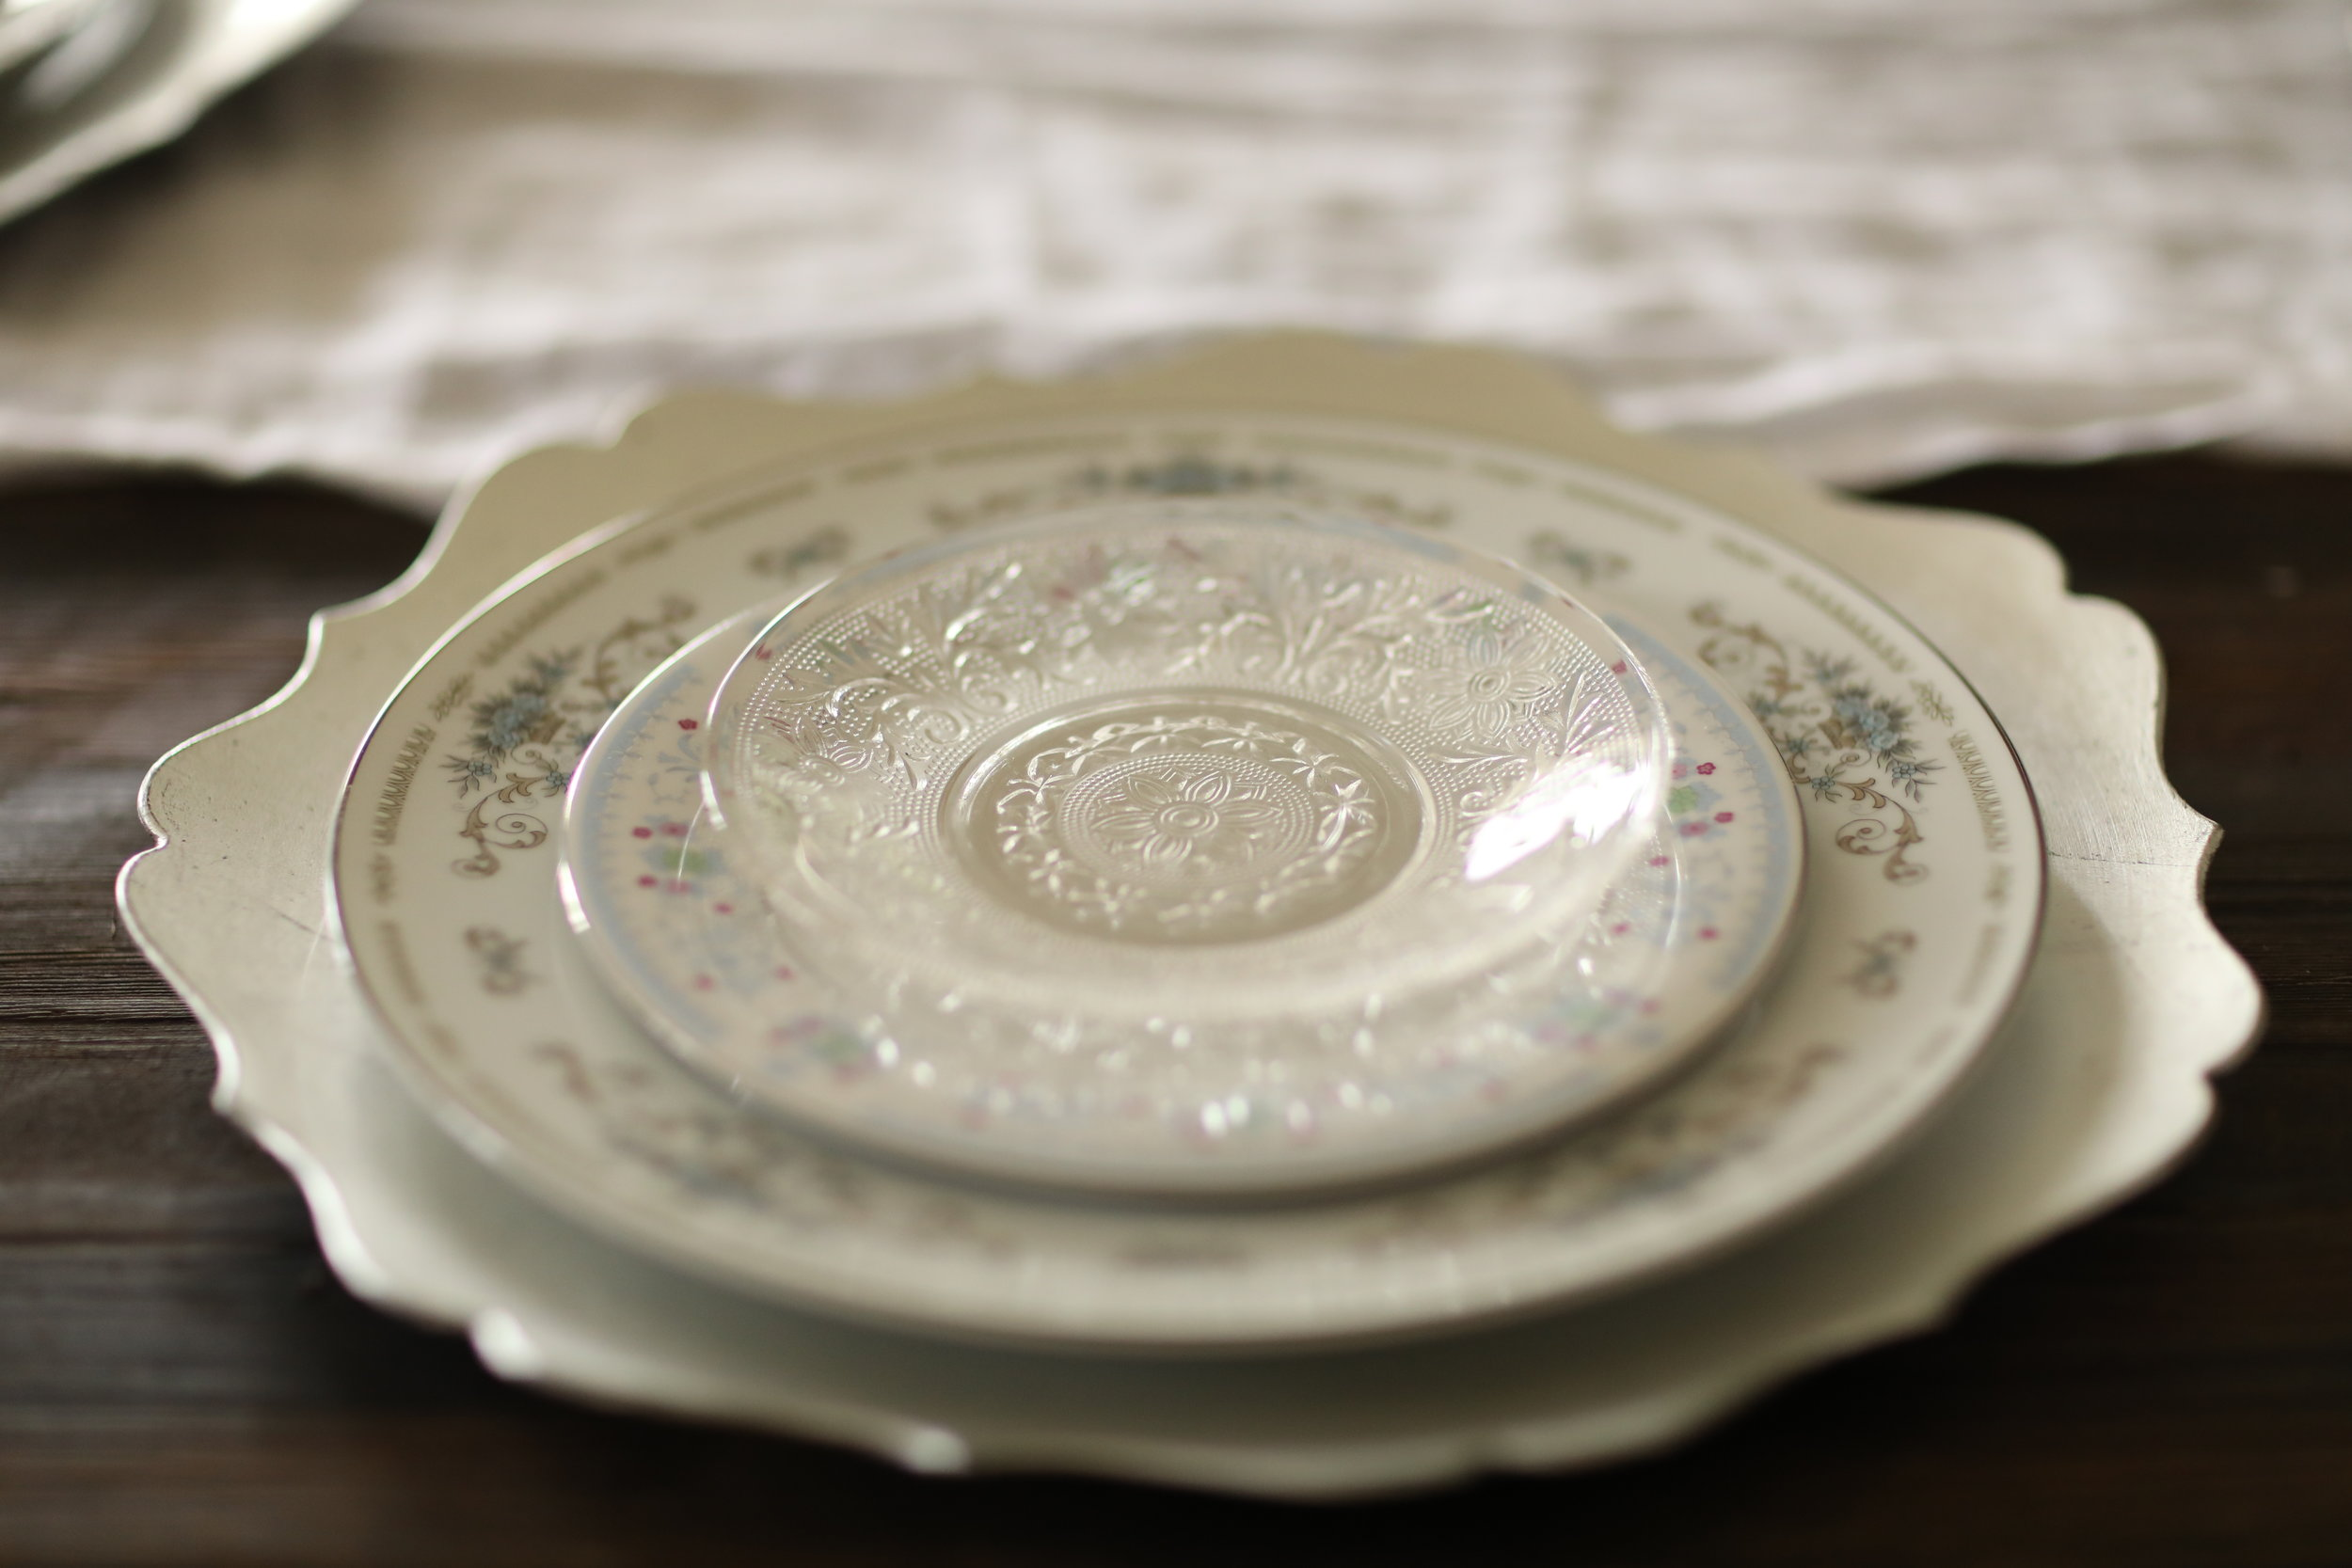 Scalloped charger plate under vintage mismatched china.